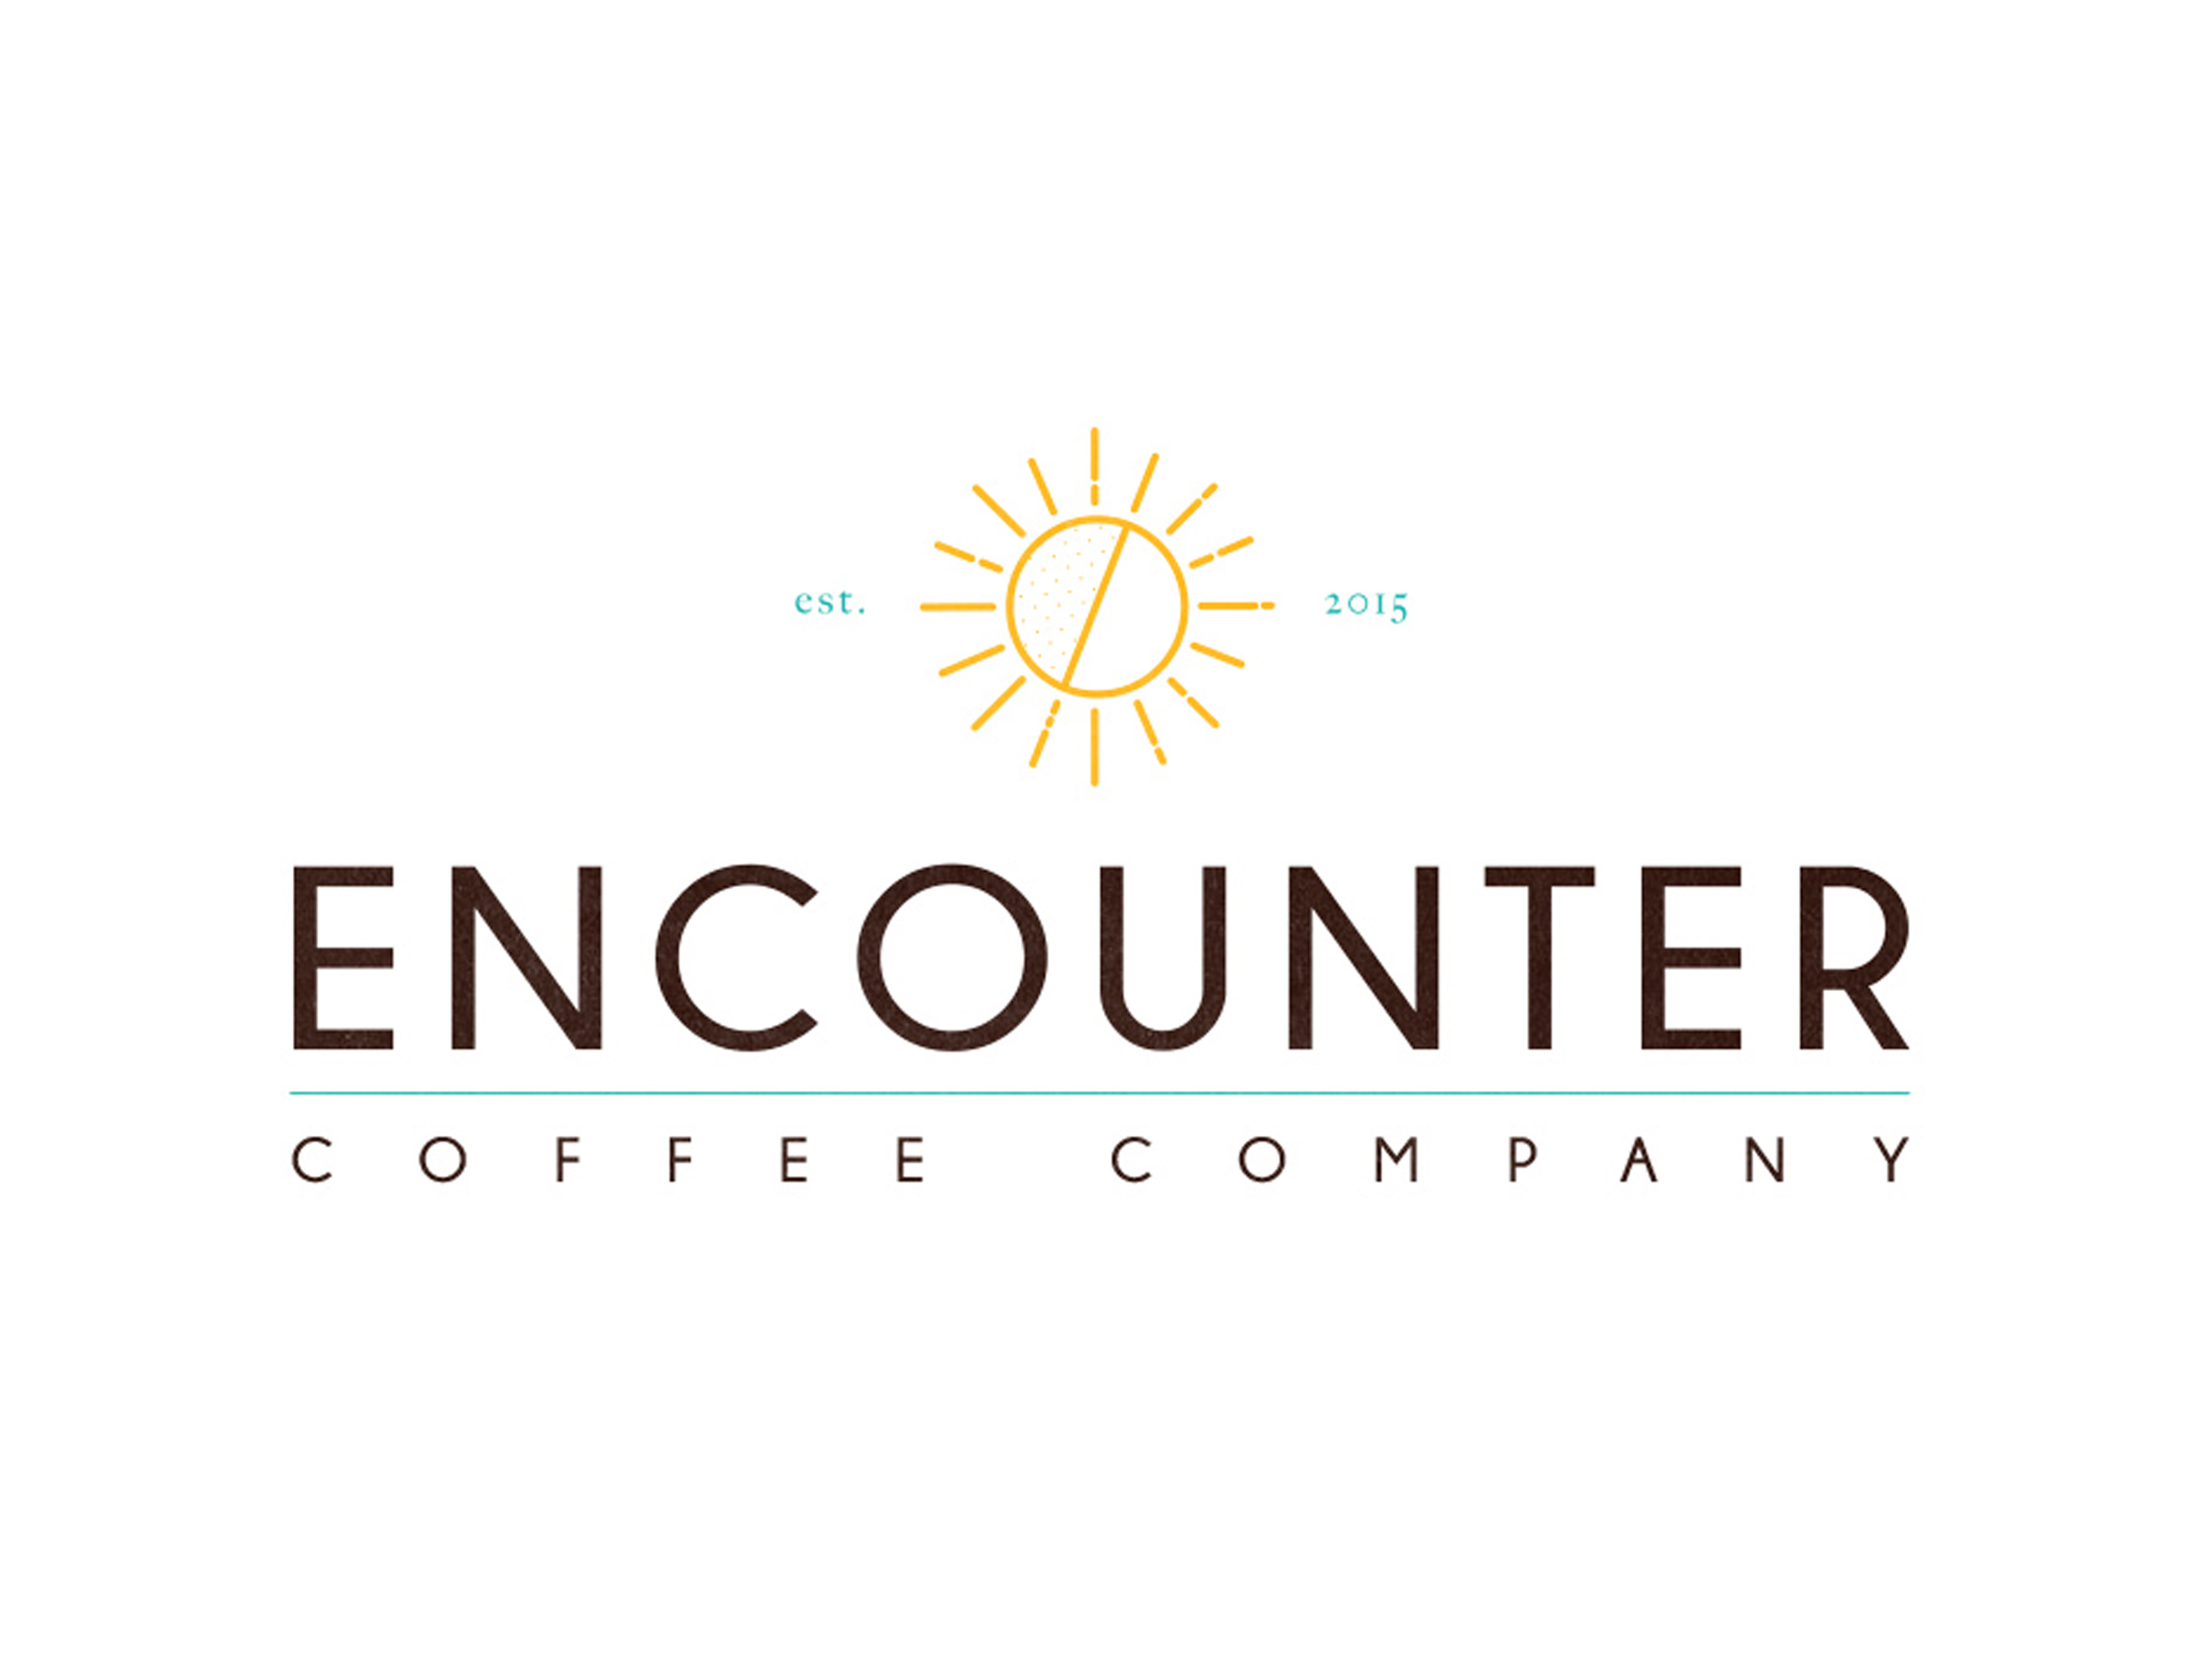 TH-logo-encounter.jpg